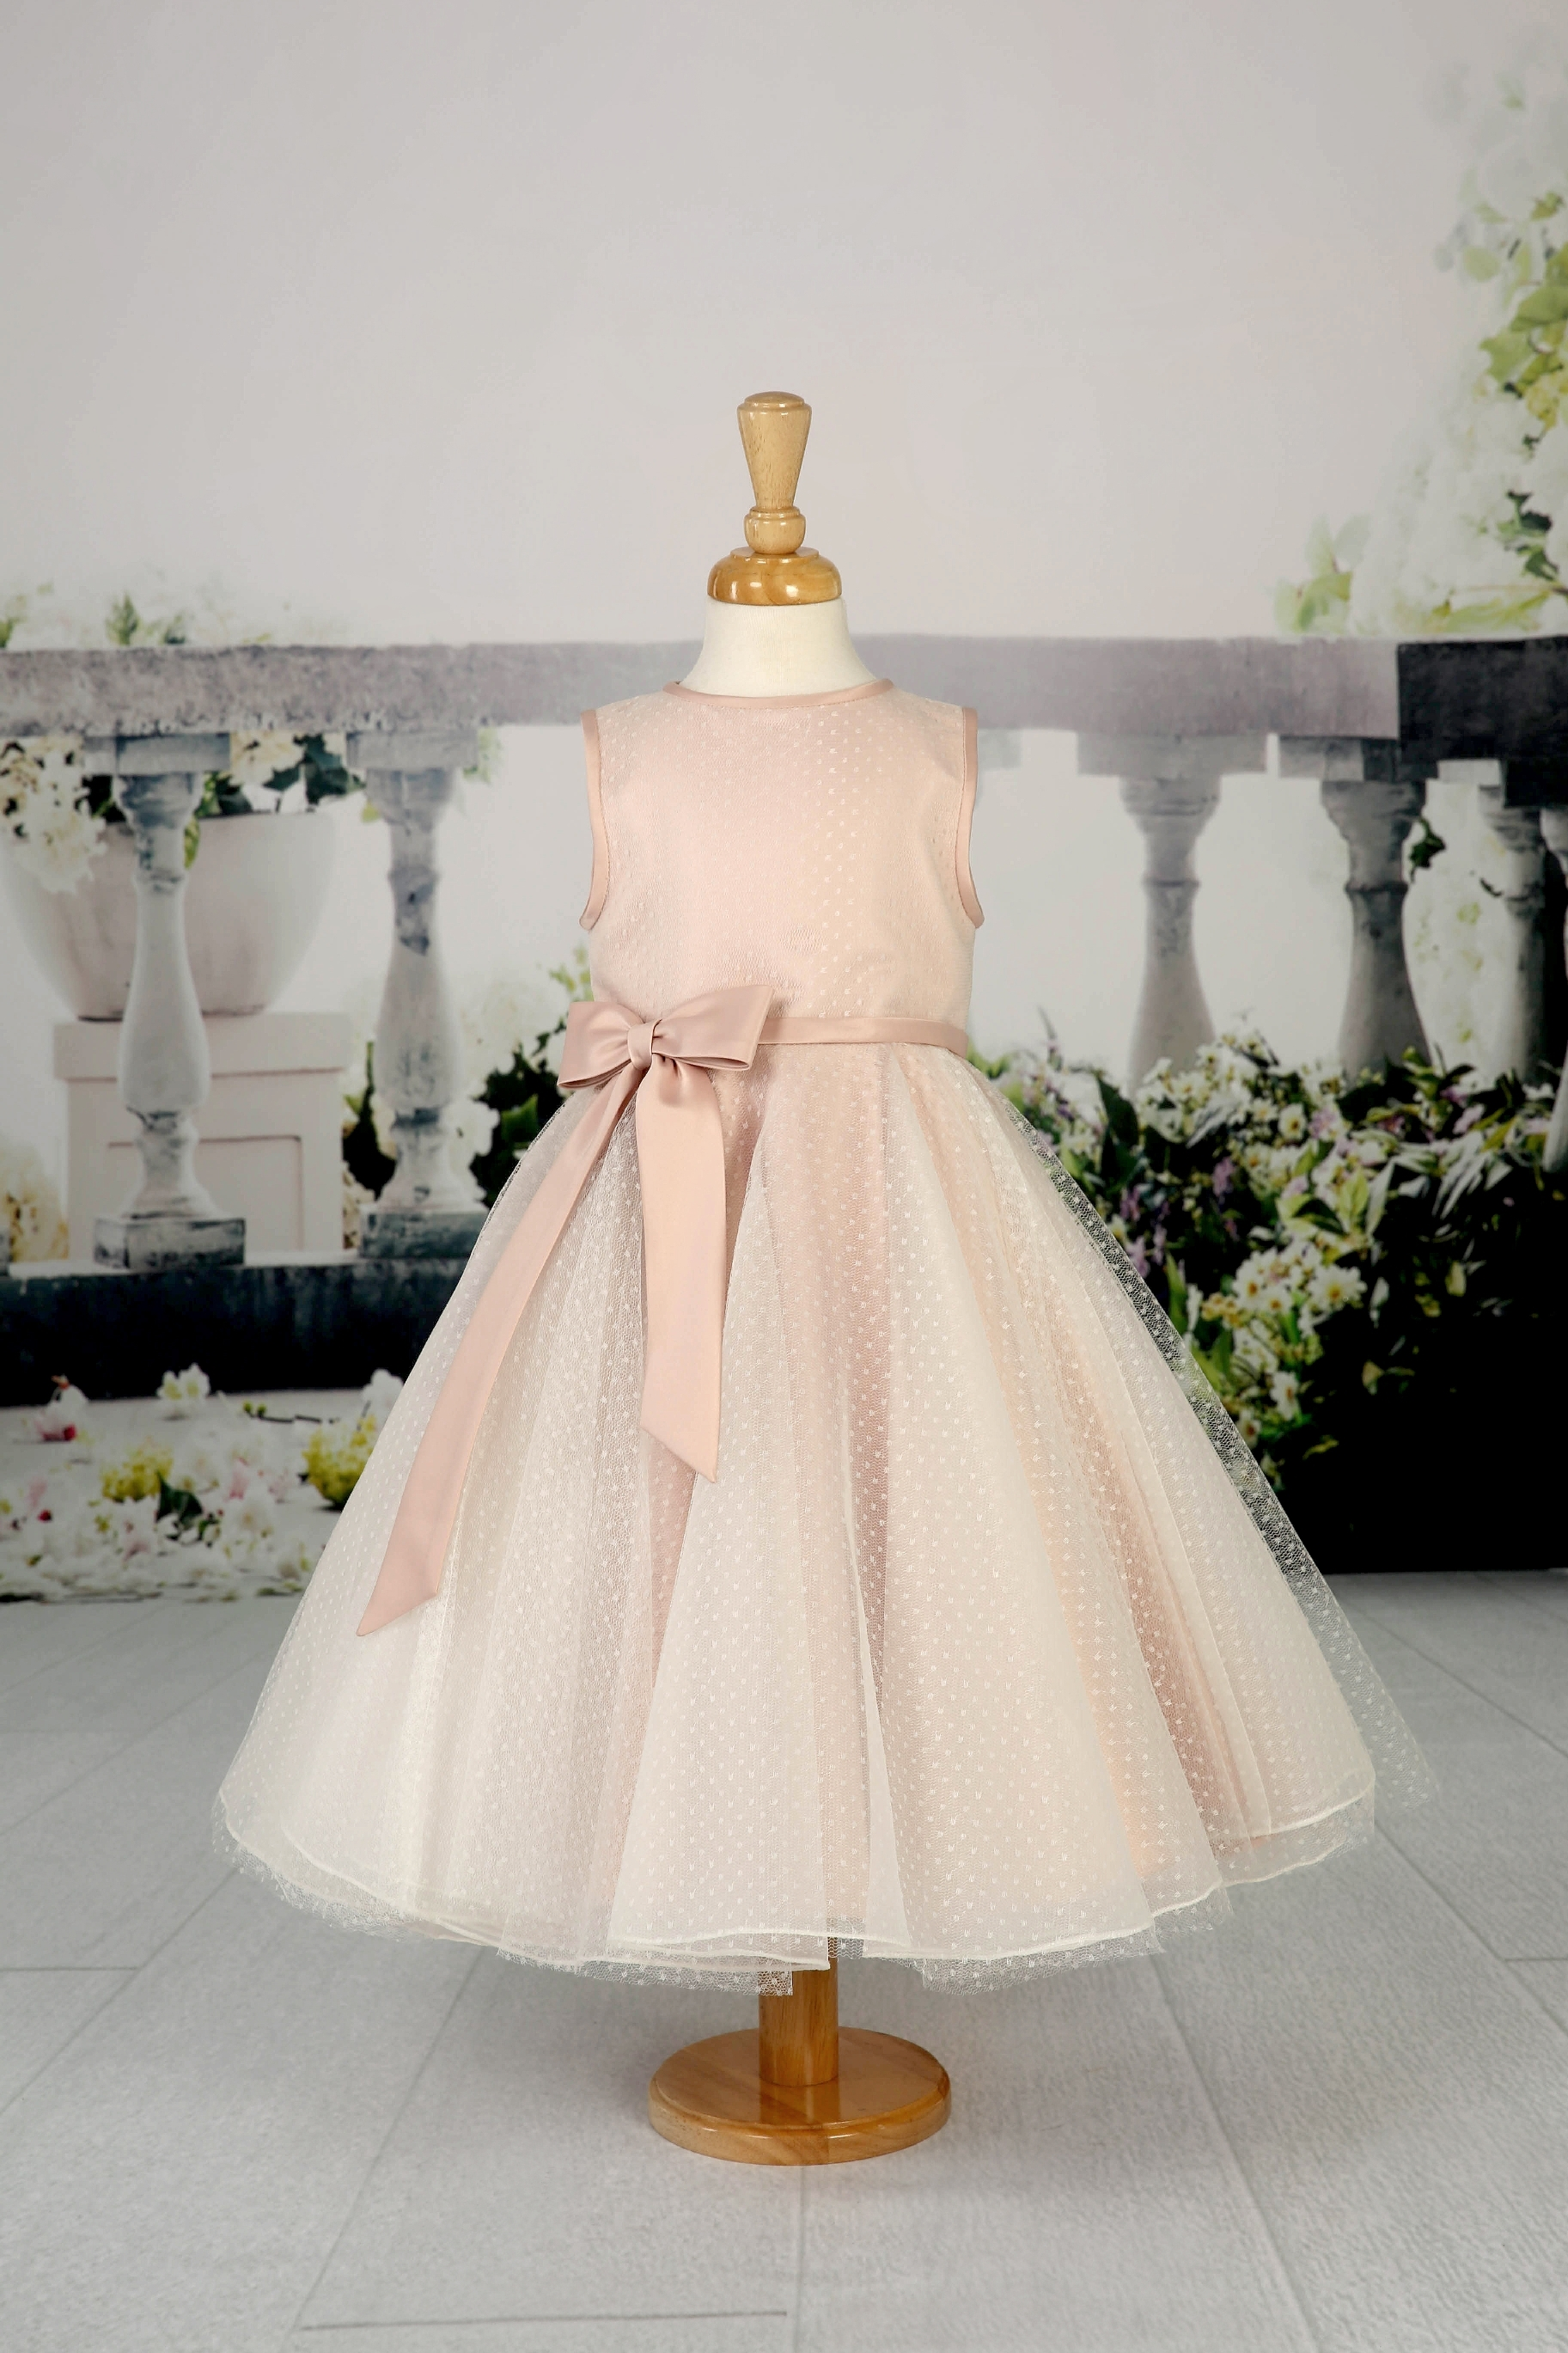 EB12430 - Pretty flowergirl dress with beautiful, spotted tulle overlay and satin waistband and bow